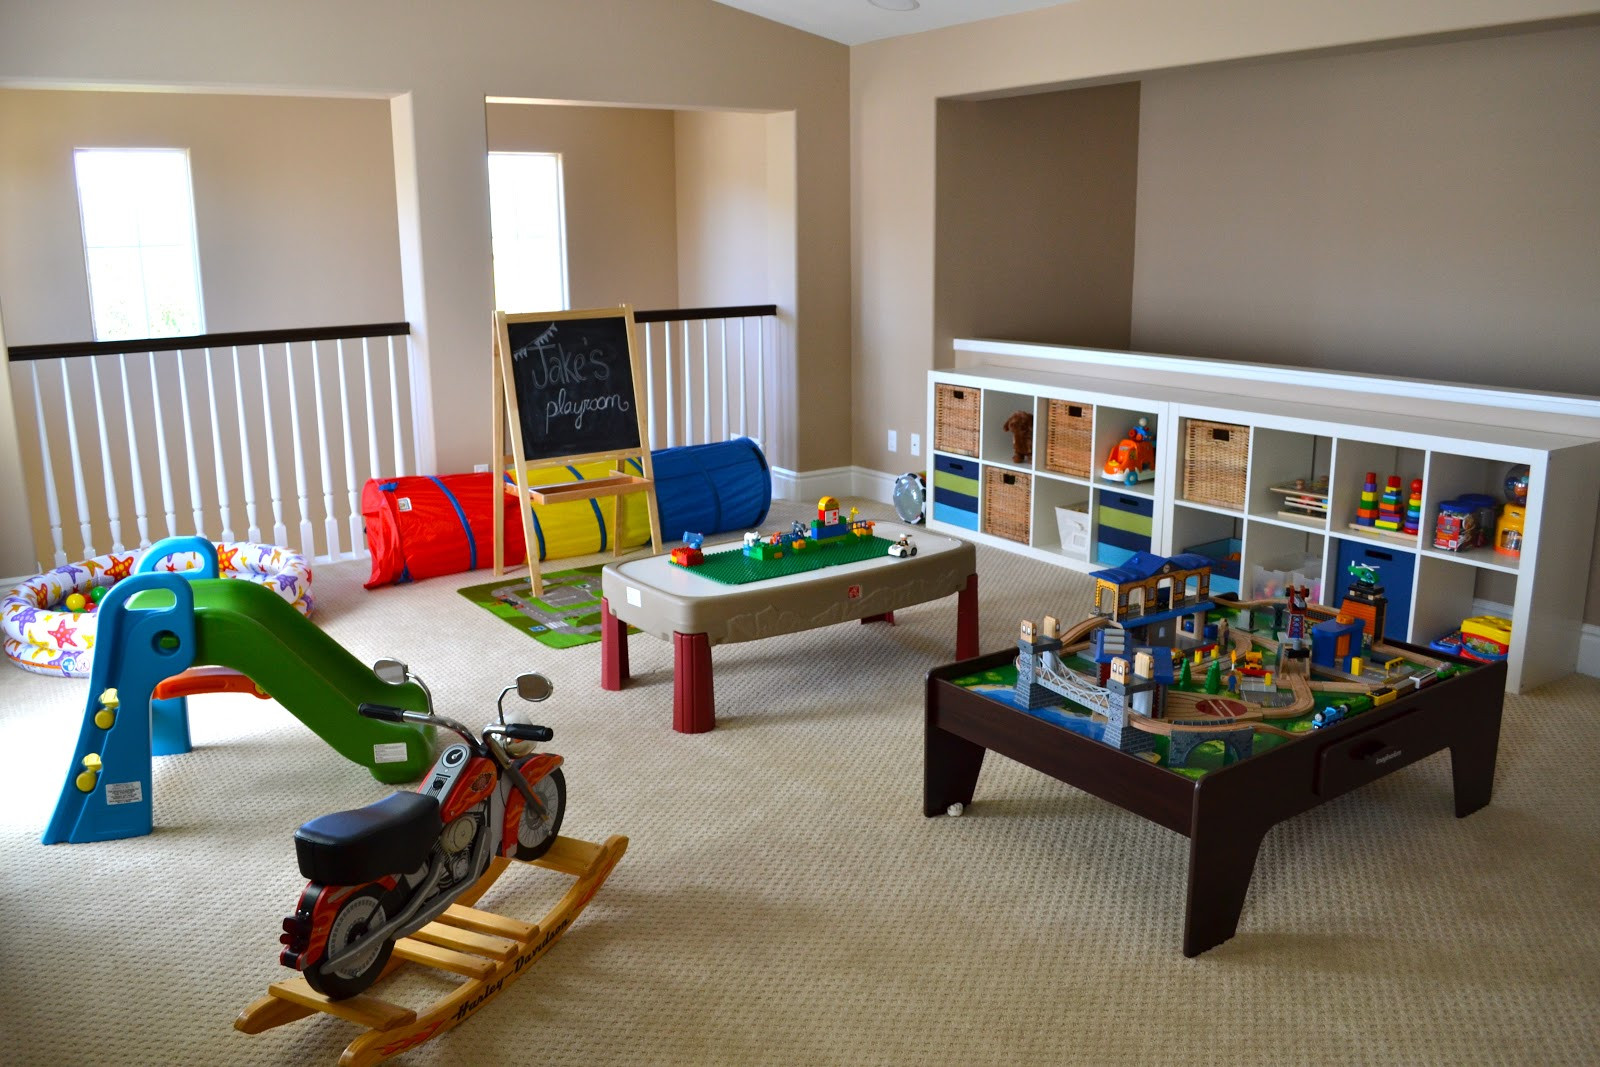 Kids Games Room Ideas  Playroom Tour With Lots of DIY Ideas • Color Made Happy